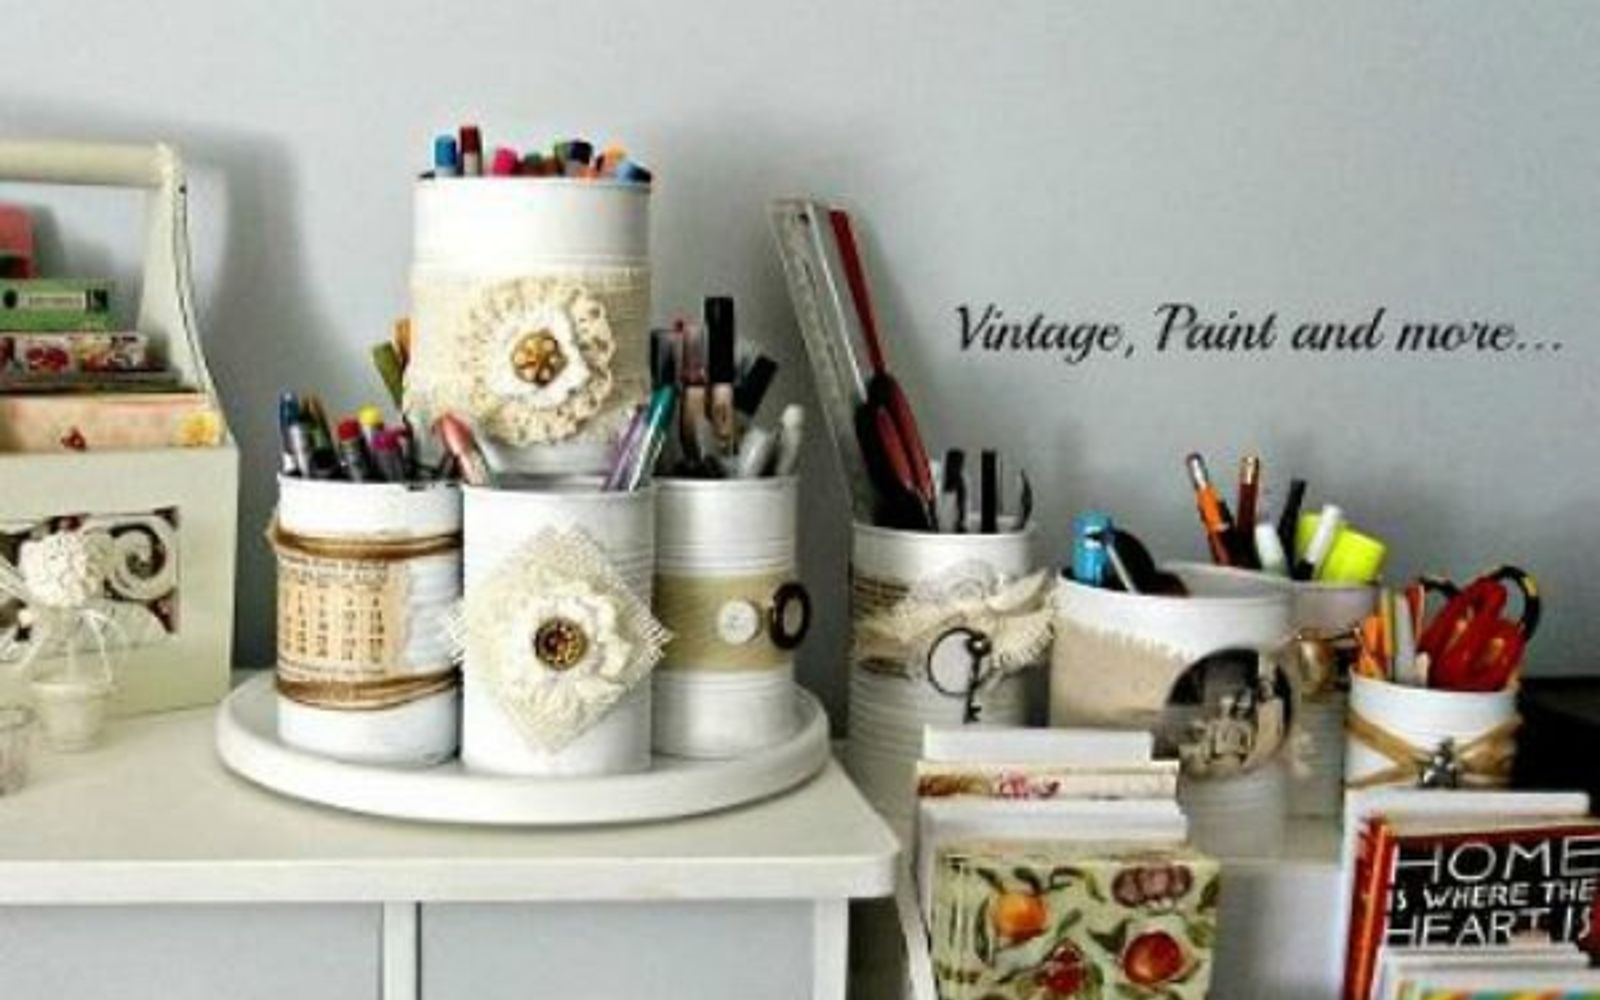 s 11 upcycles so simple you ll wonder why you ve never thought of them, crafts, repurposing upcycling, Decorate Tins Cans for Stylish Desk Storage